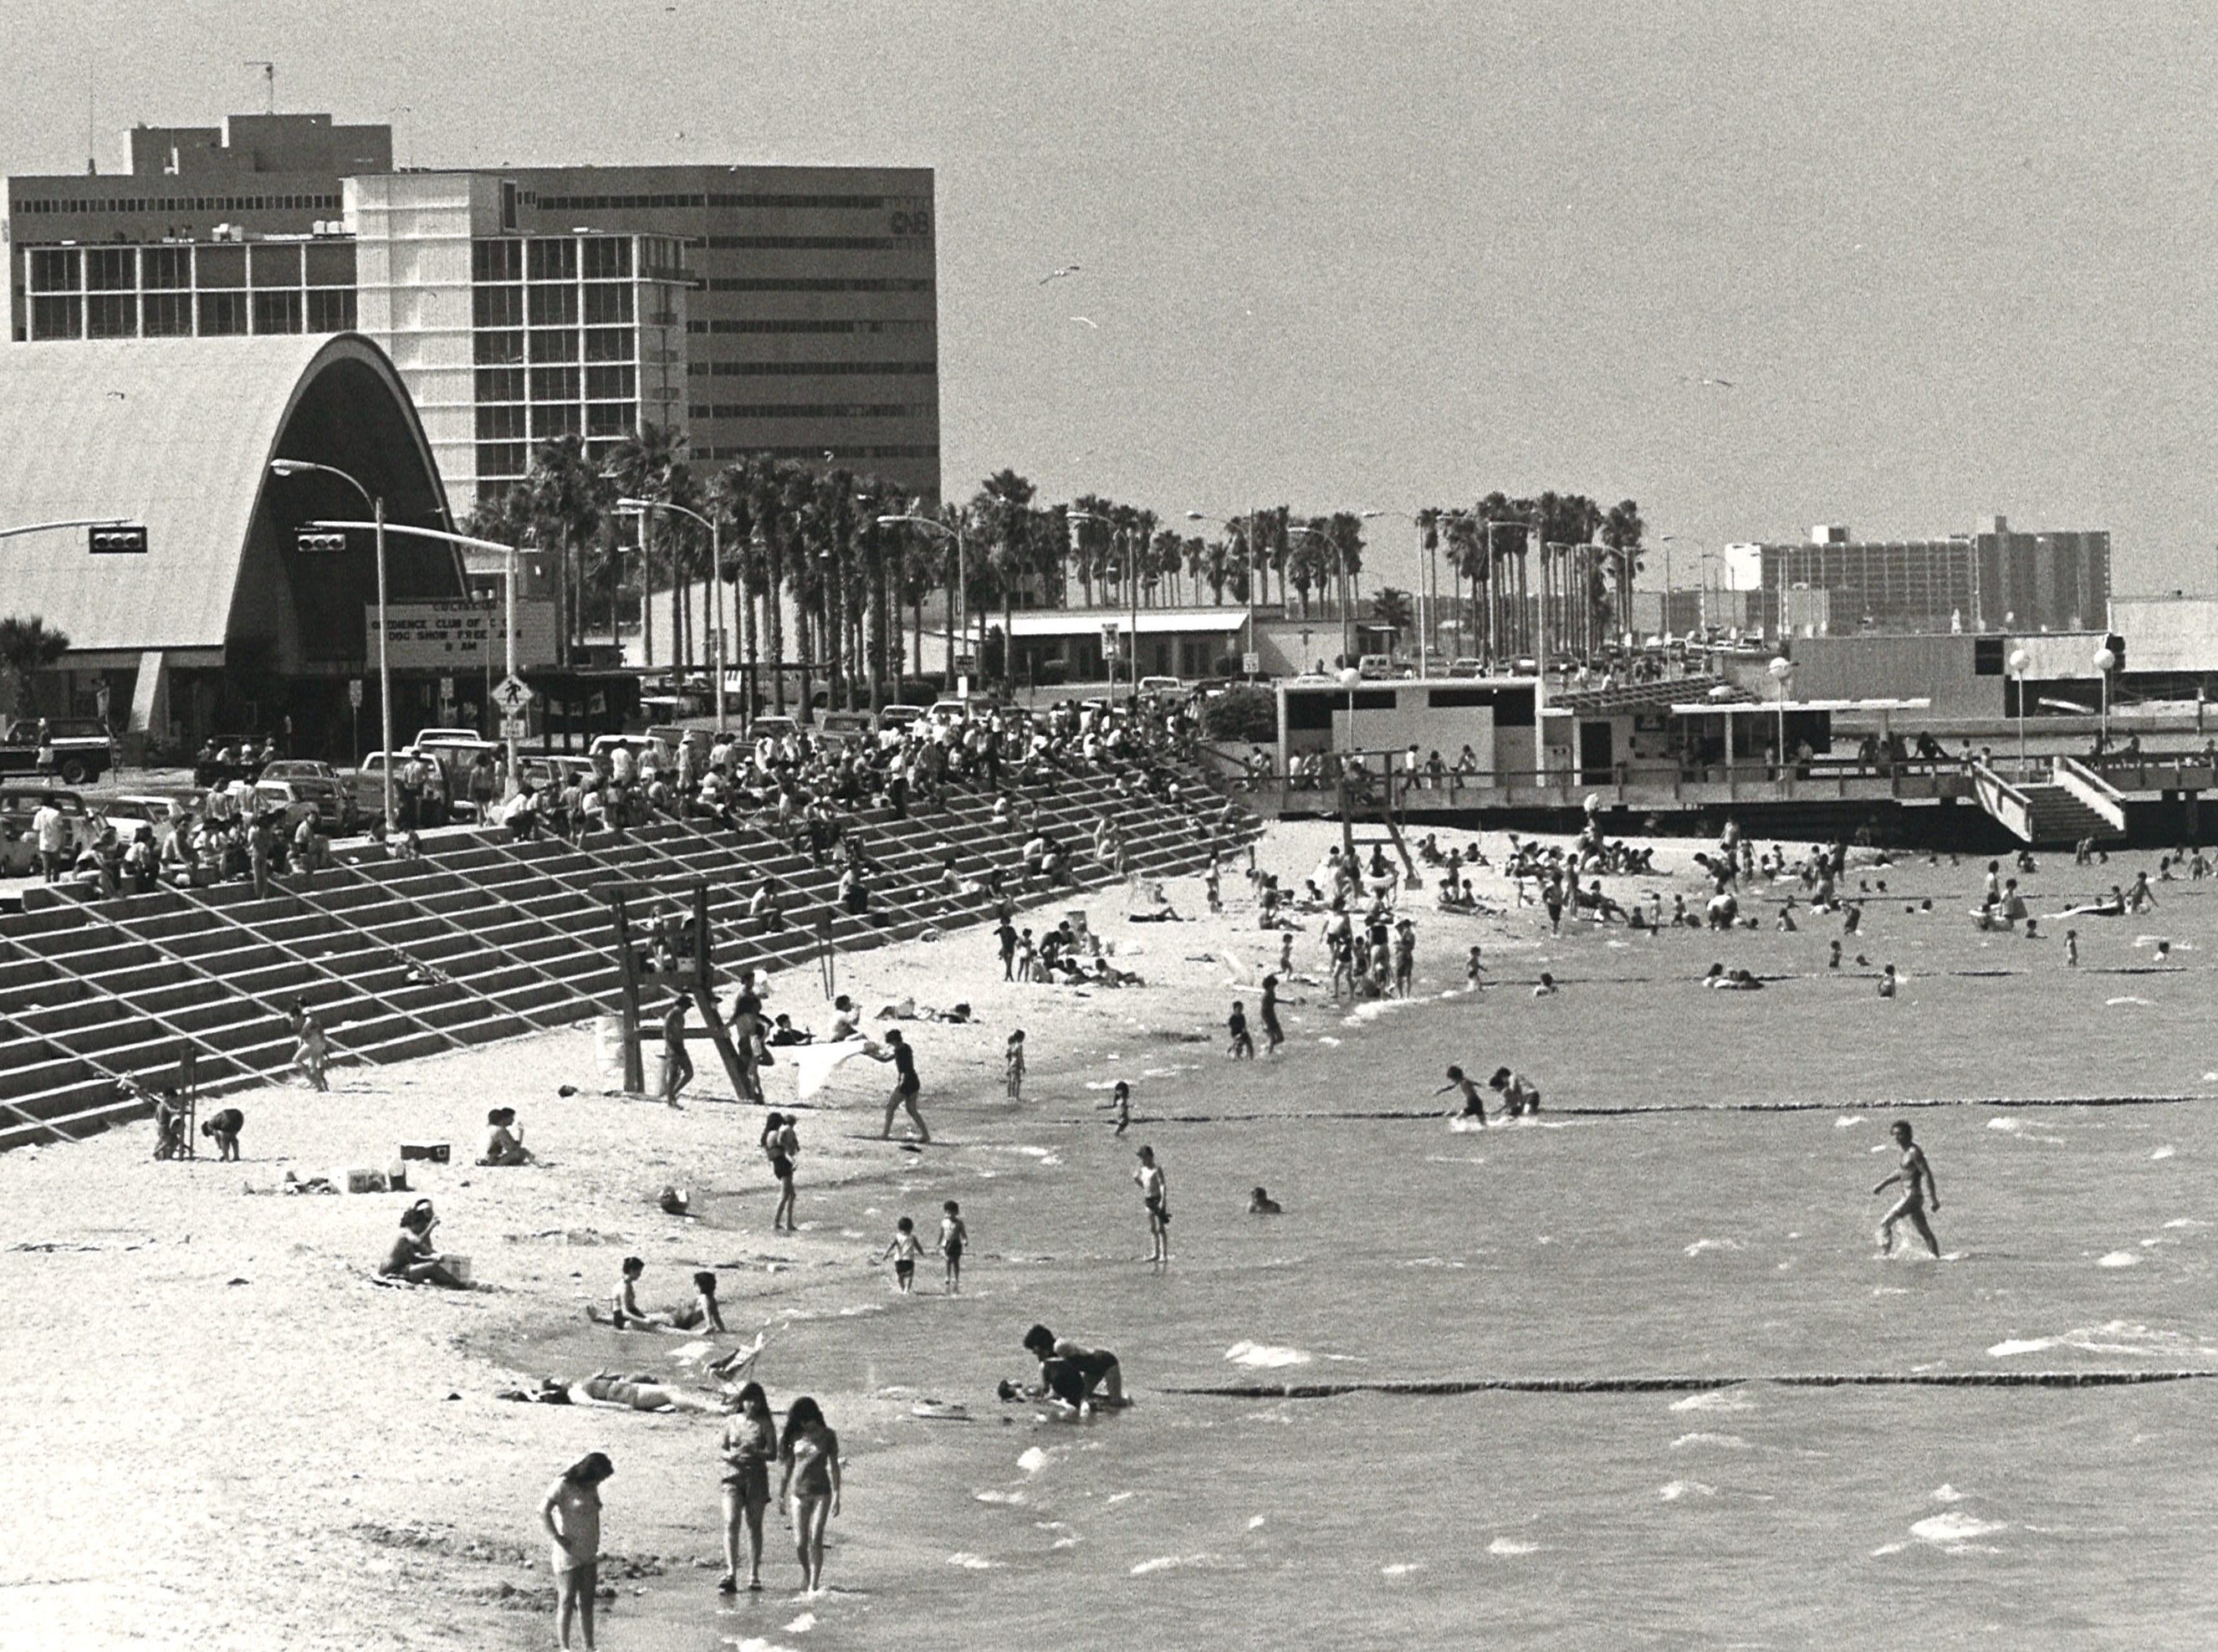 McGee Beach in downtown Corpus Christi on June 13, 1982.